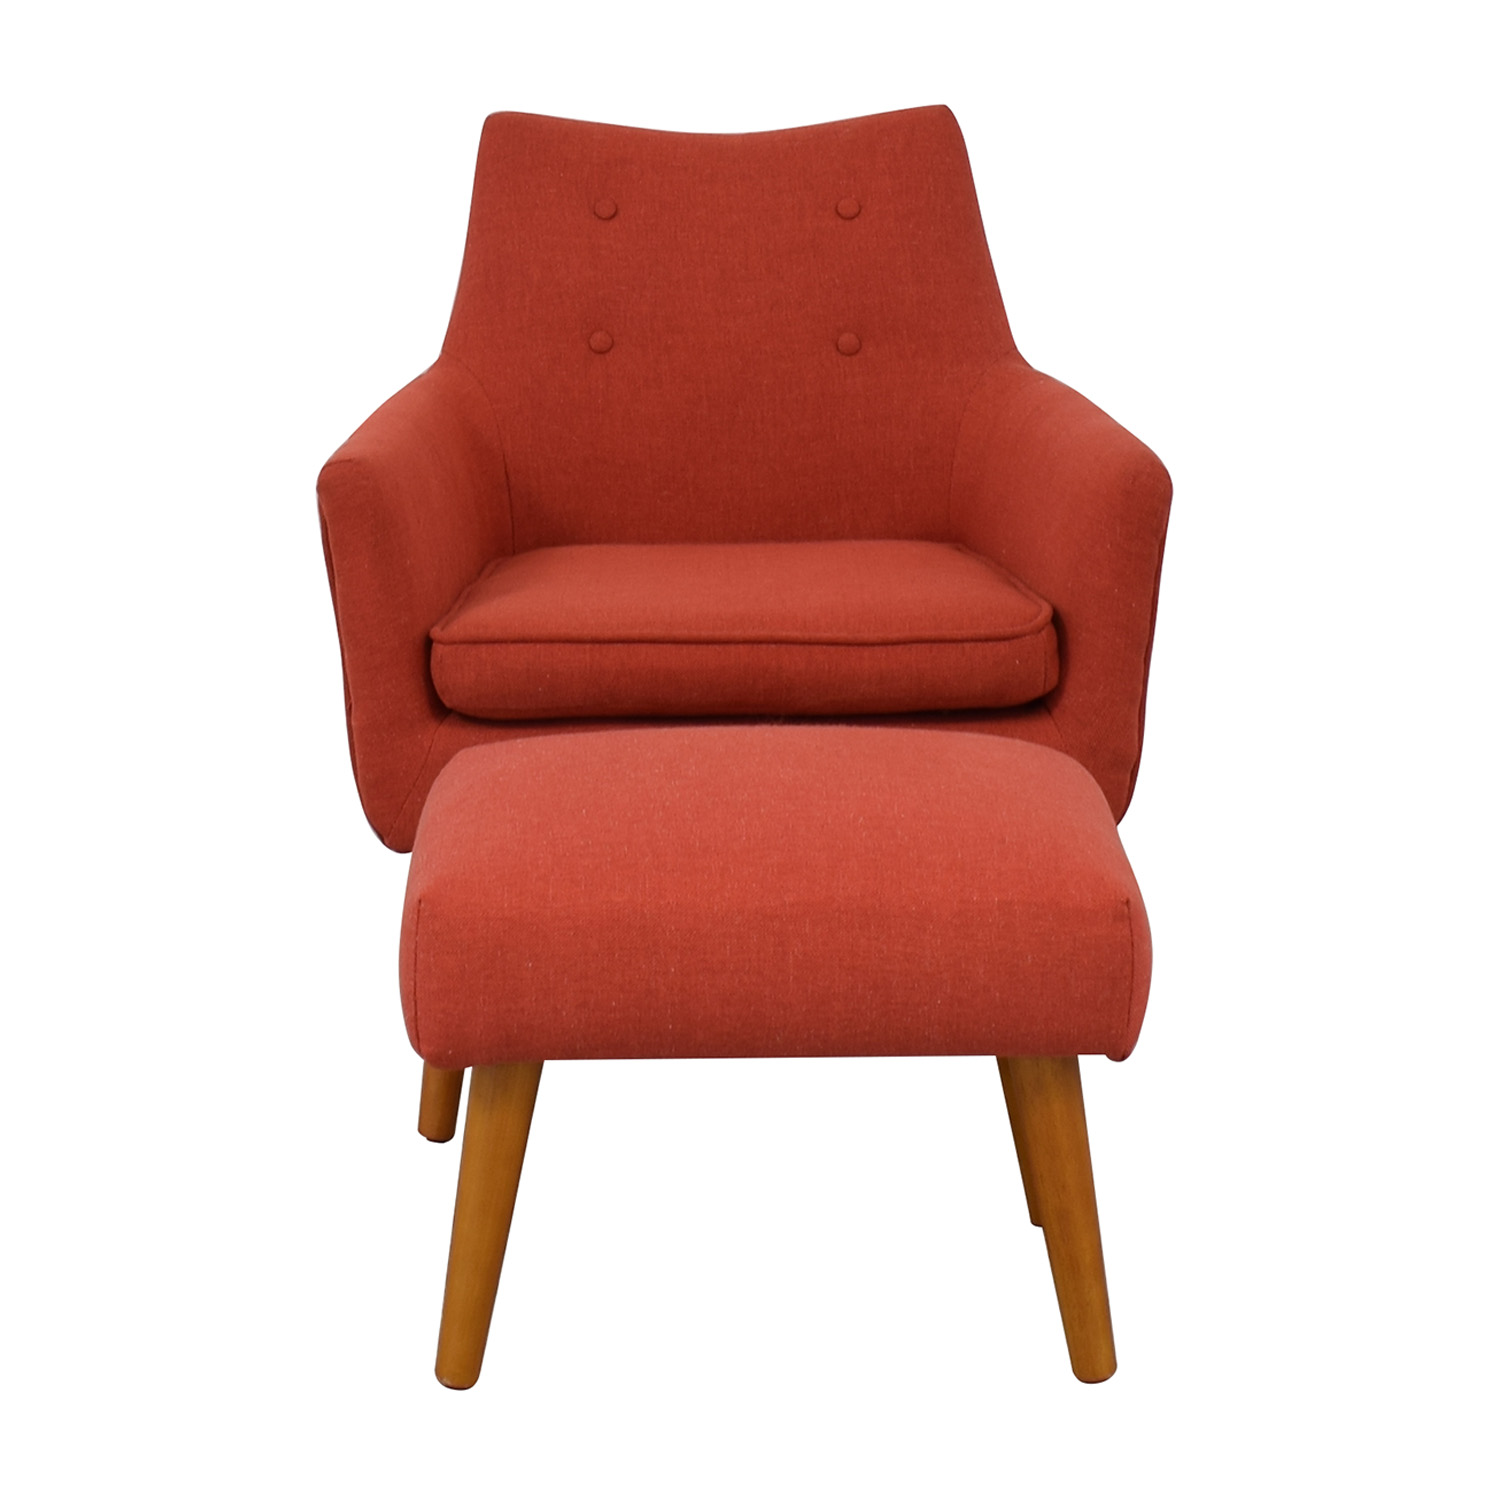 buy West Elm Mid Century Chair with Ottoman West Elm Chairs